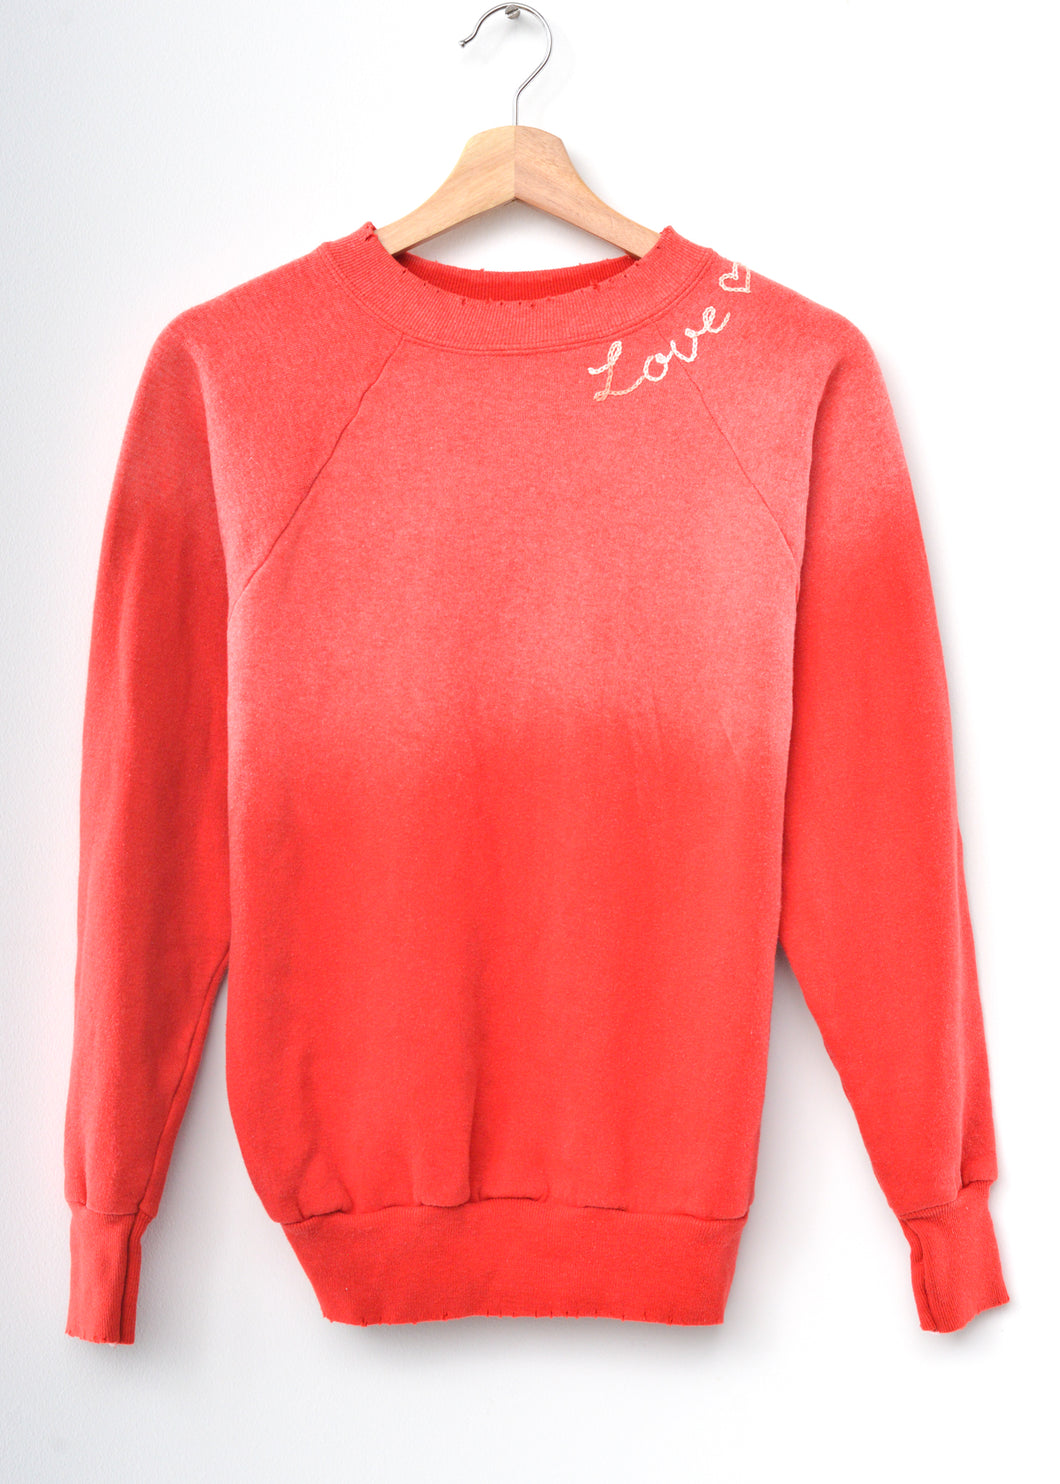 Love ❤️ Sweatshirt- Vintage Red